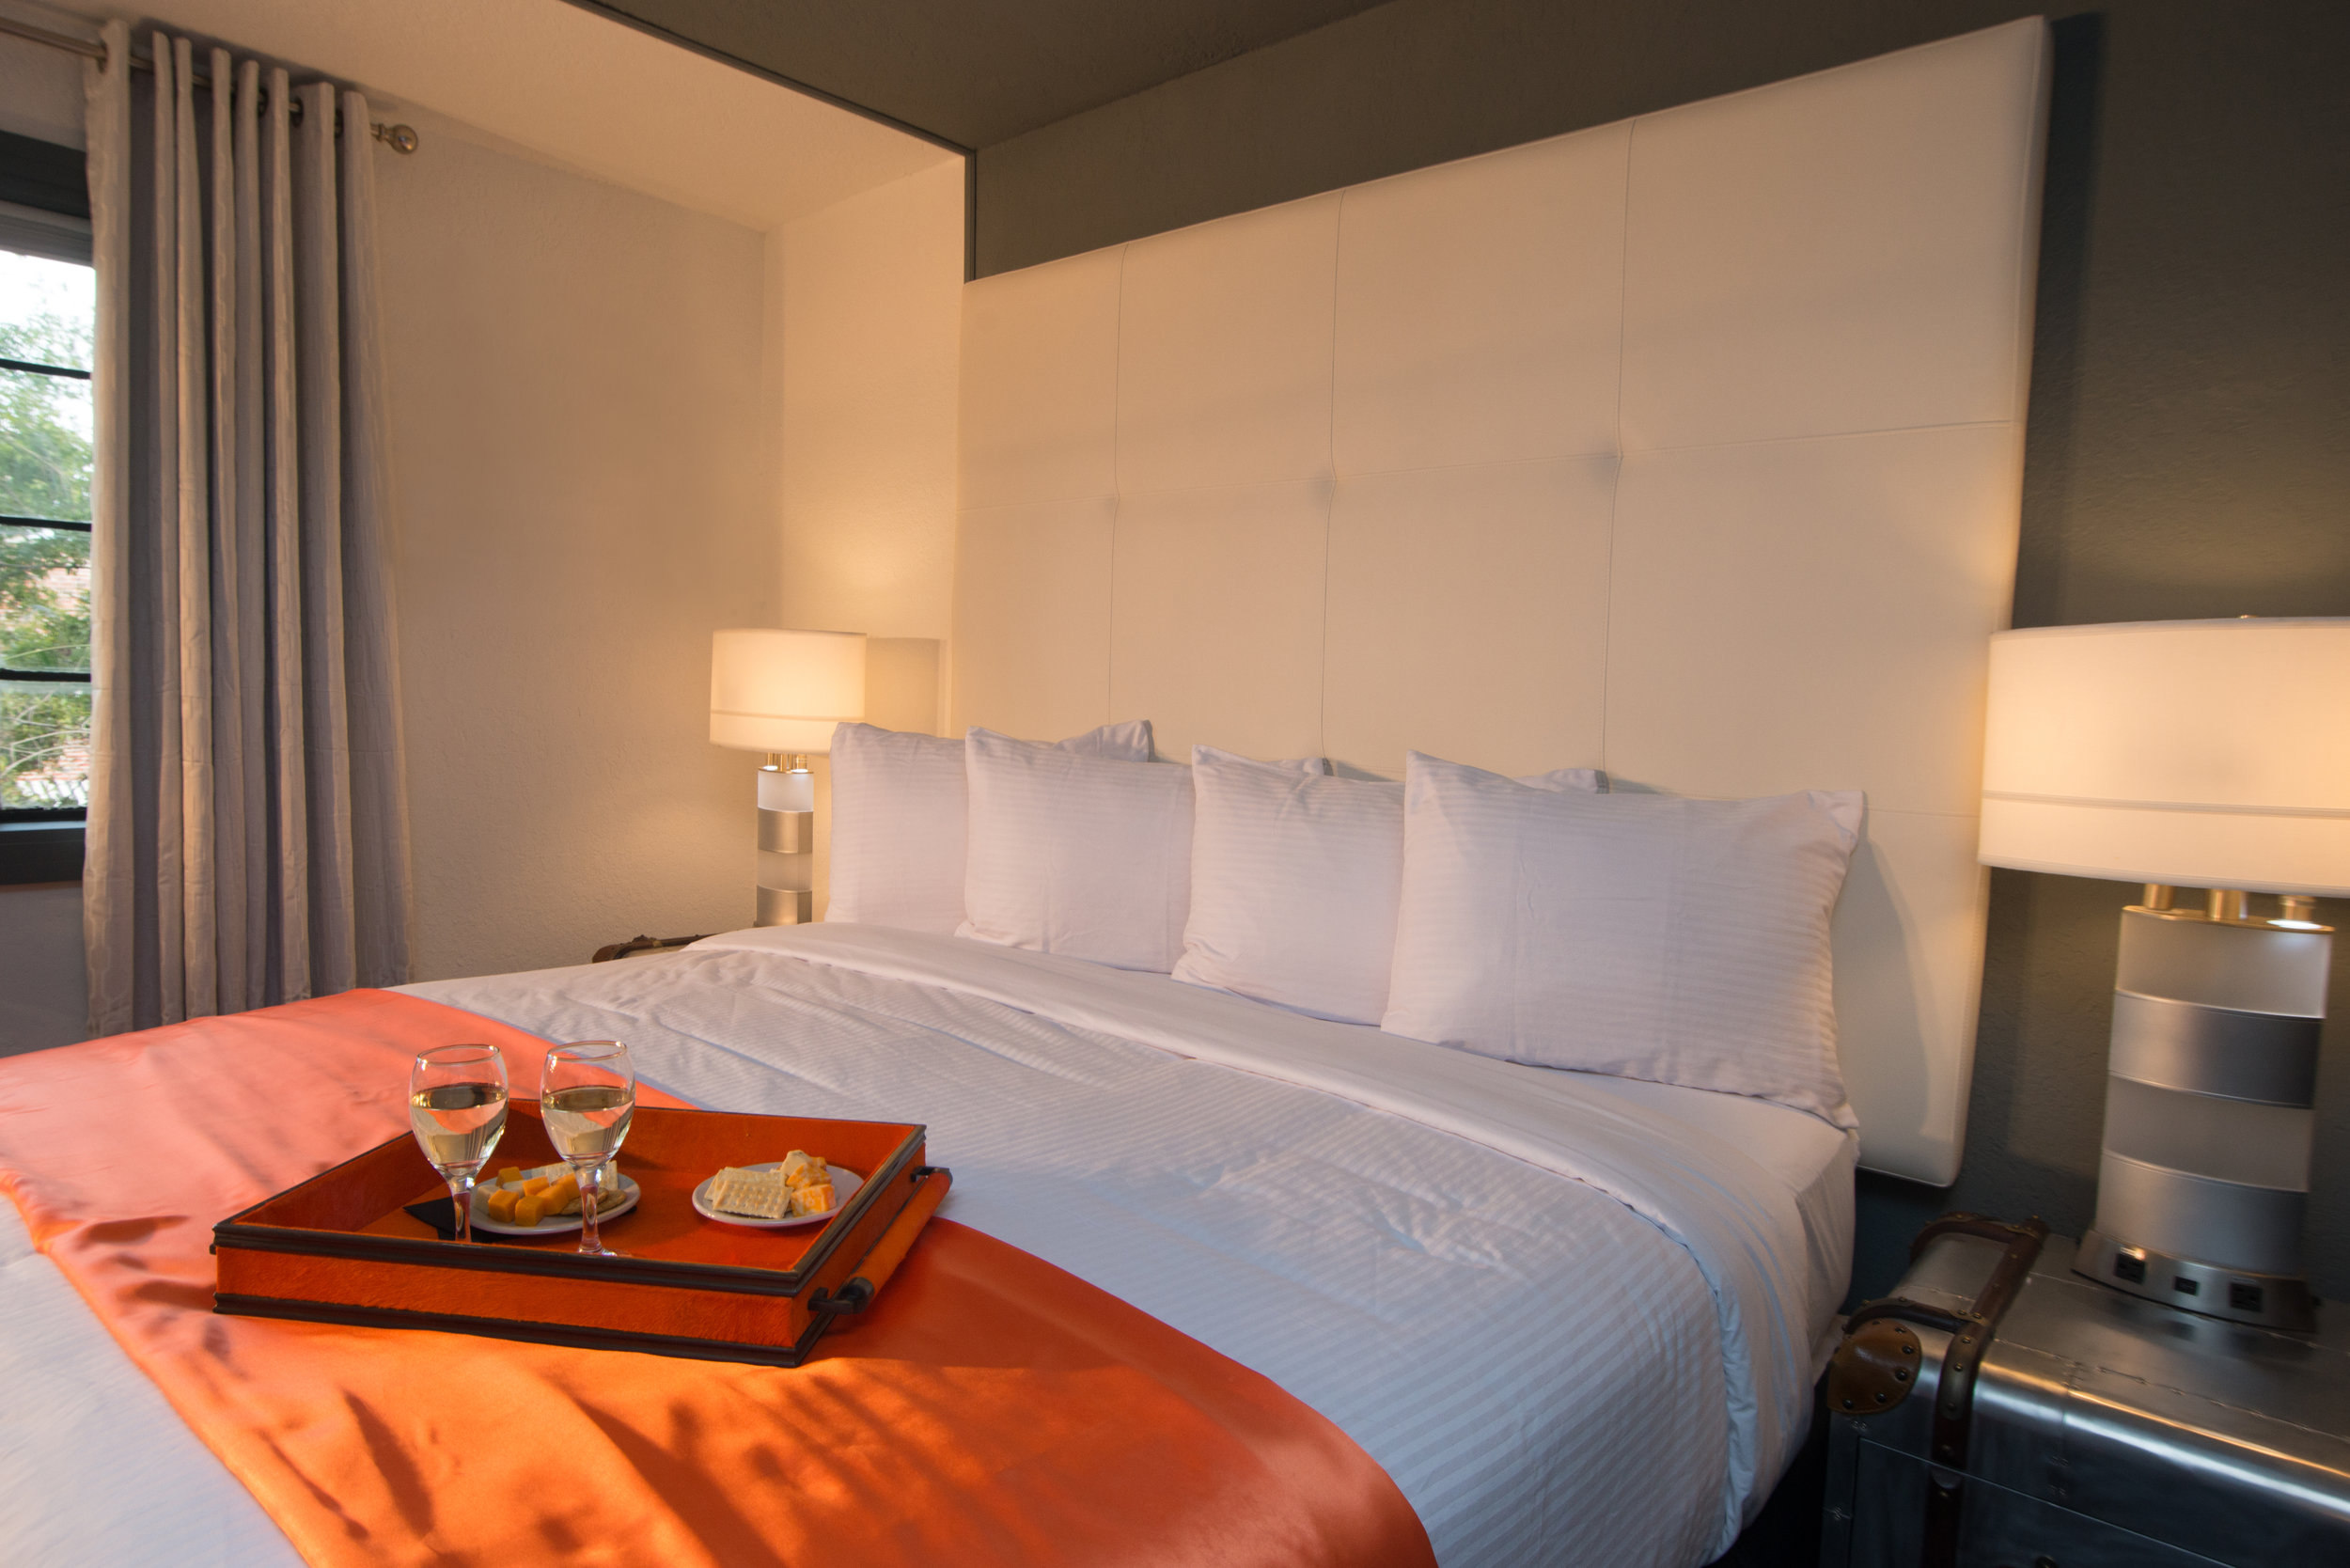 Interior of Deluxe King room with a tray of wine and food on top of bed.